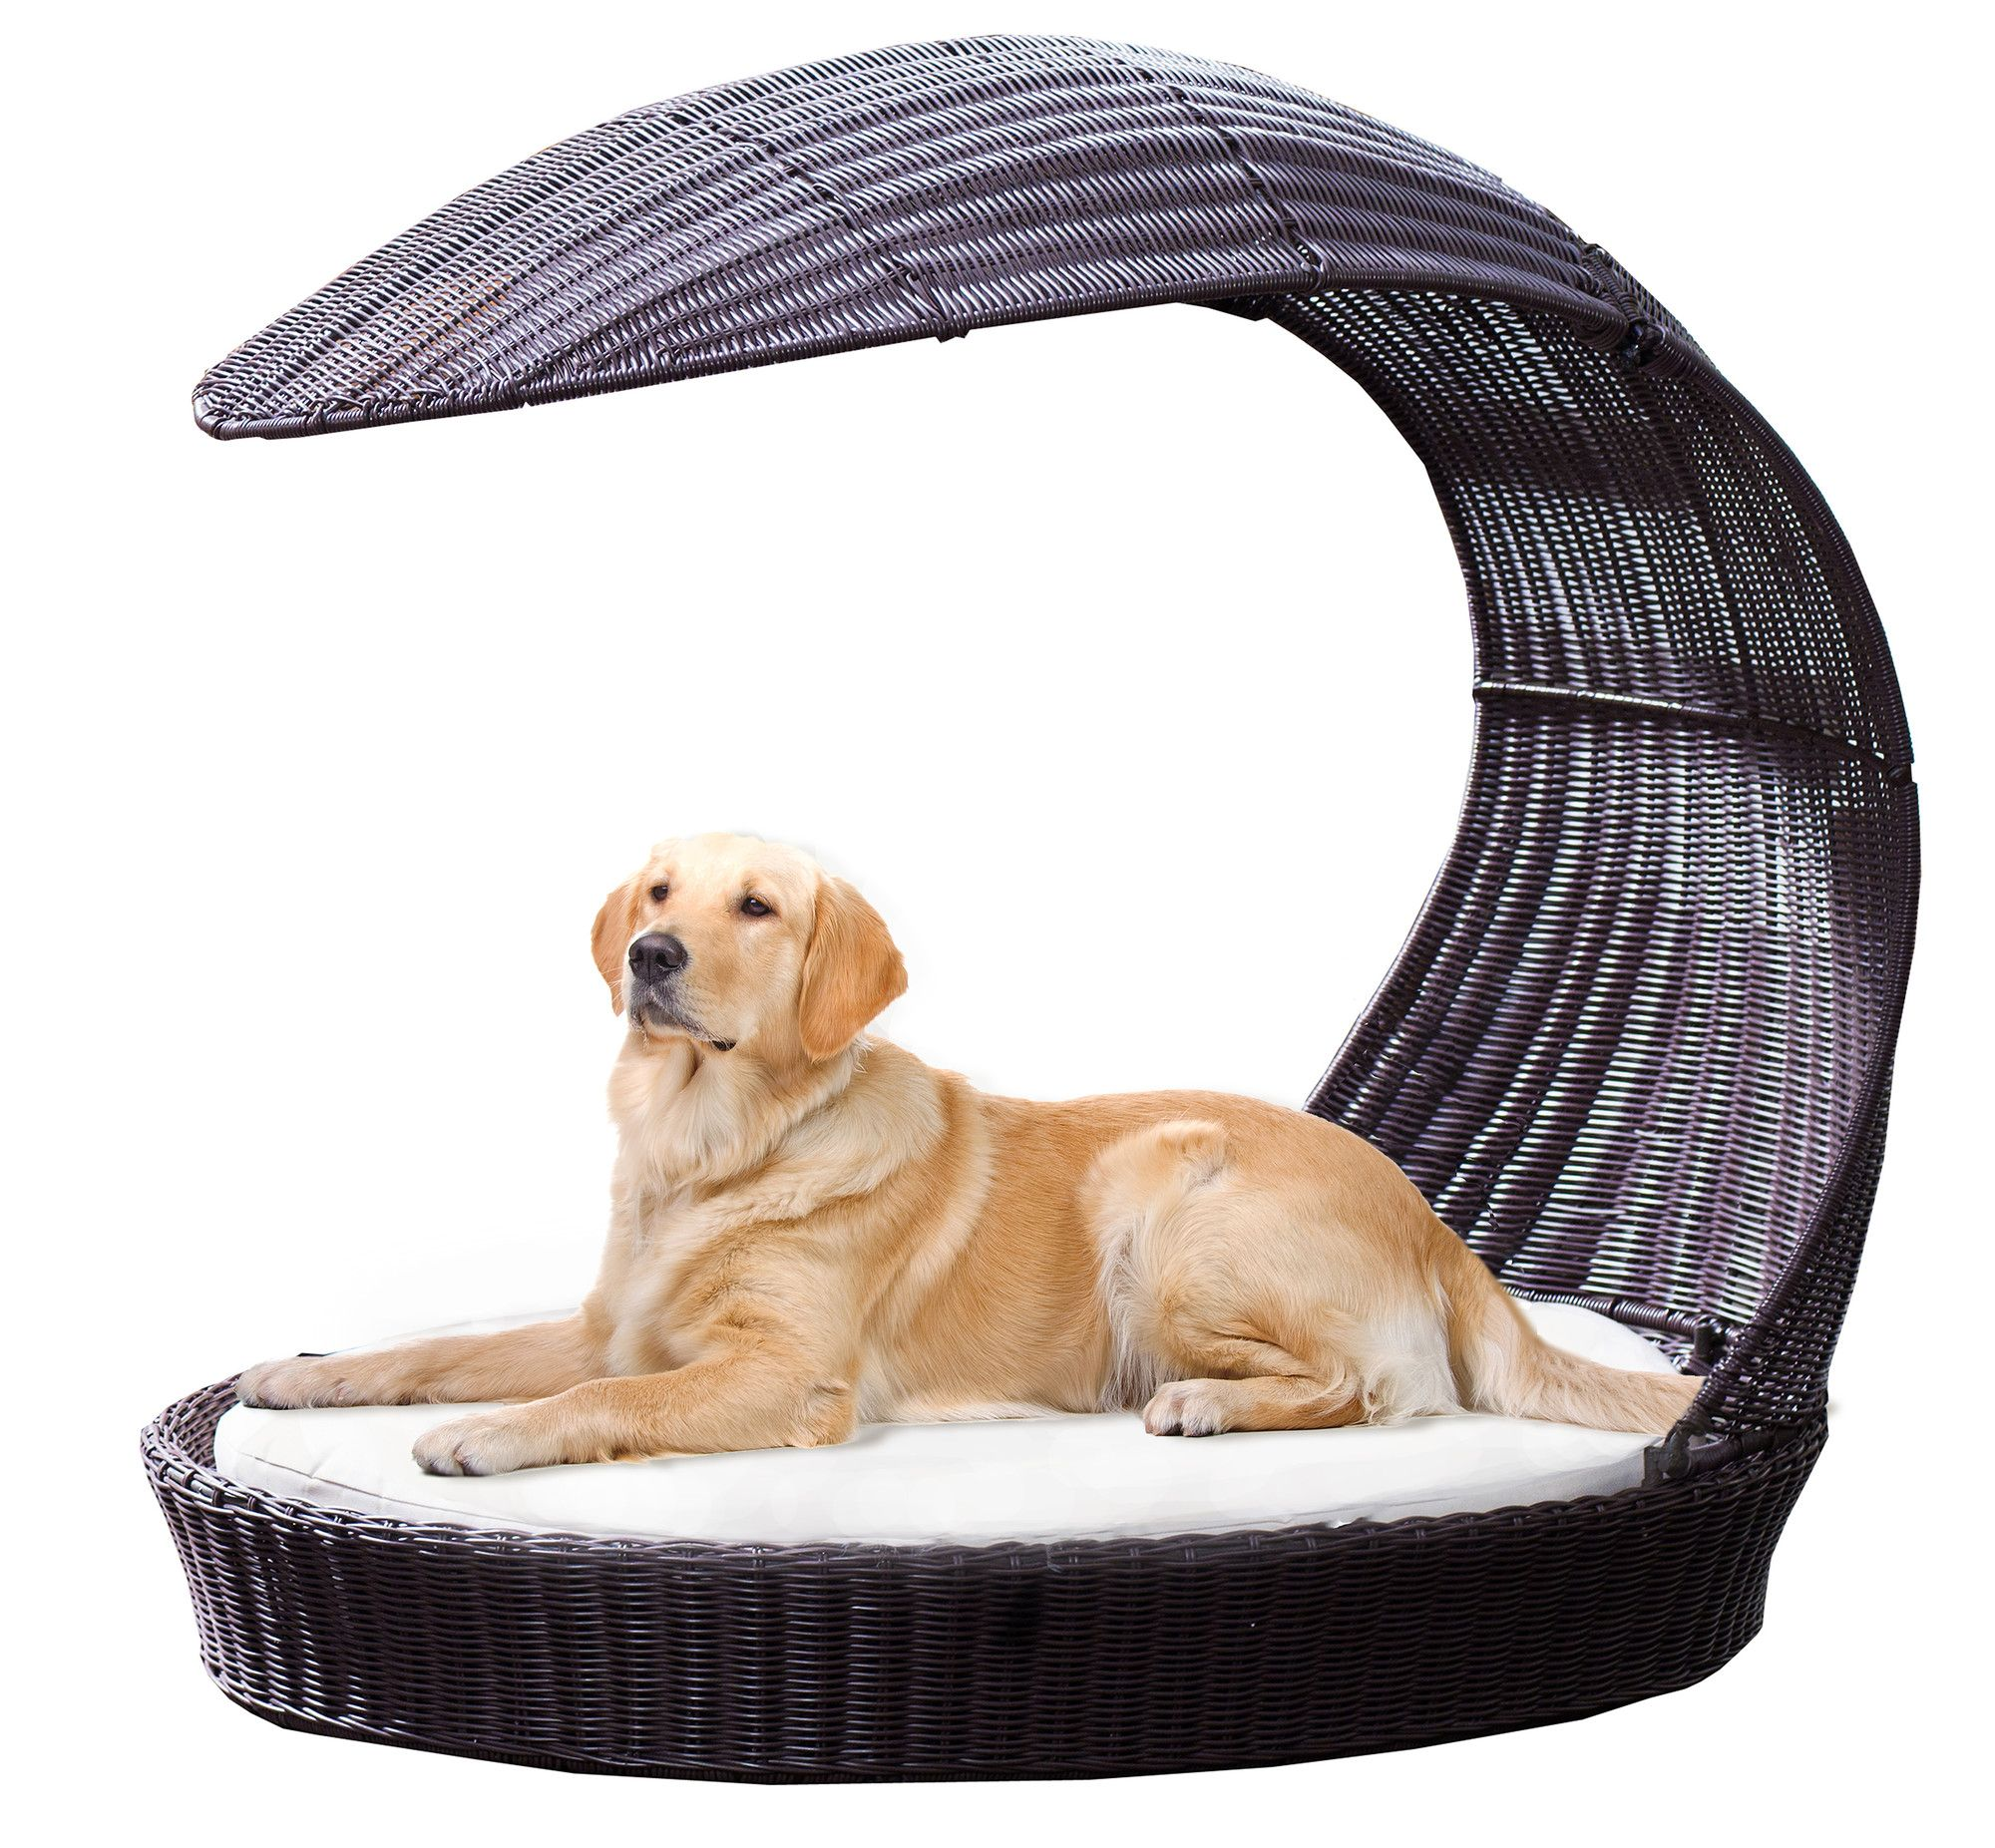 Outdoor Dog Chaise Lounge By The Refined Canine Extra Large 249 99